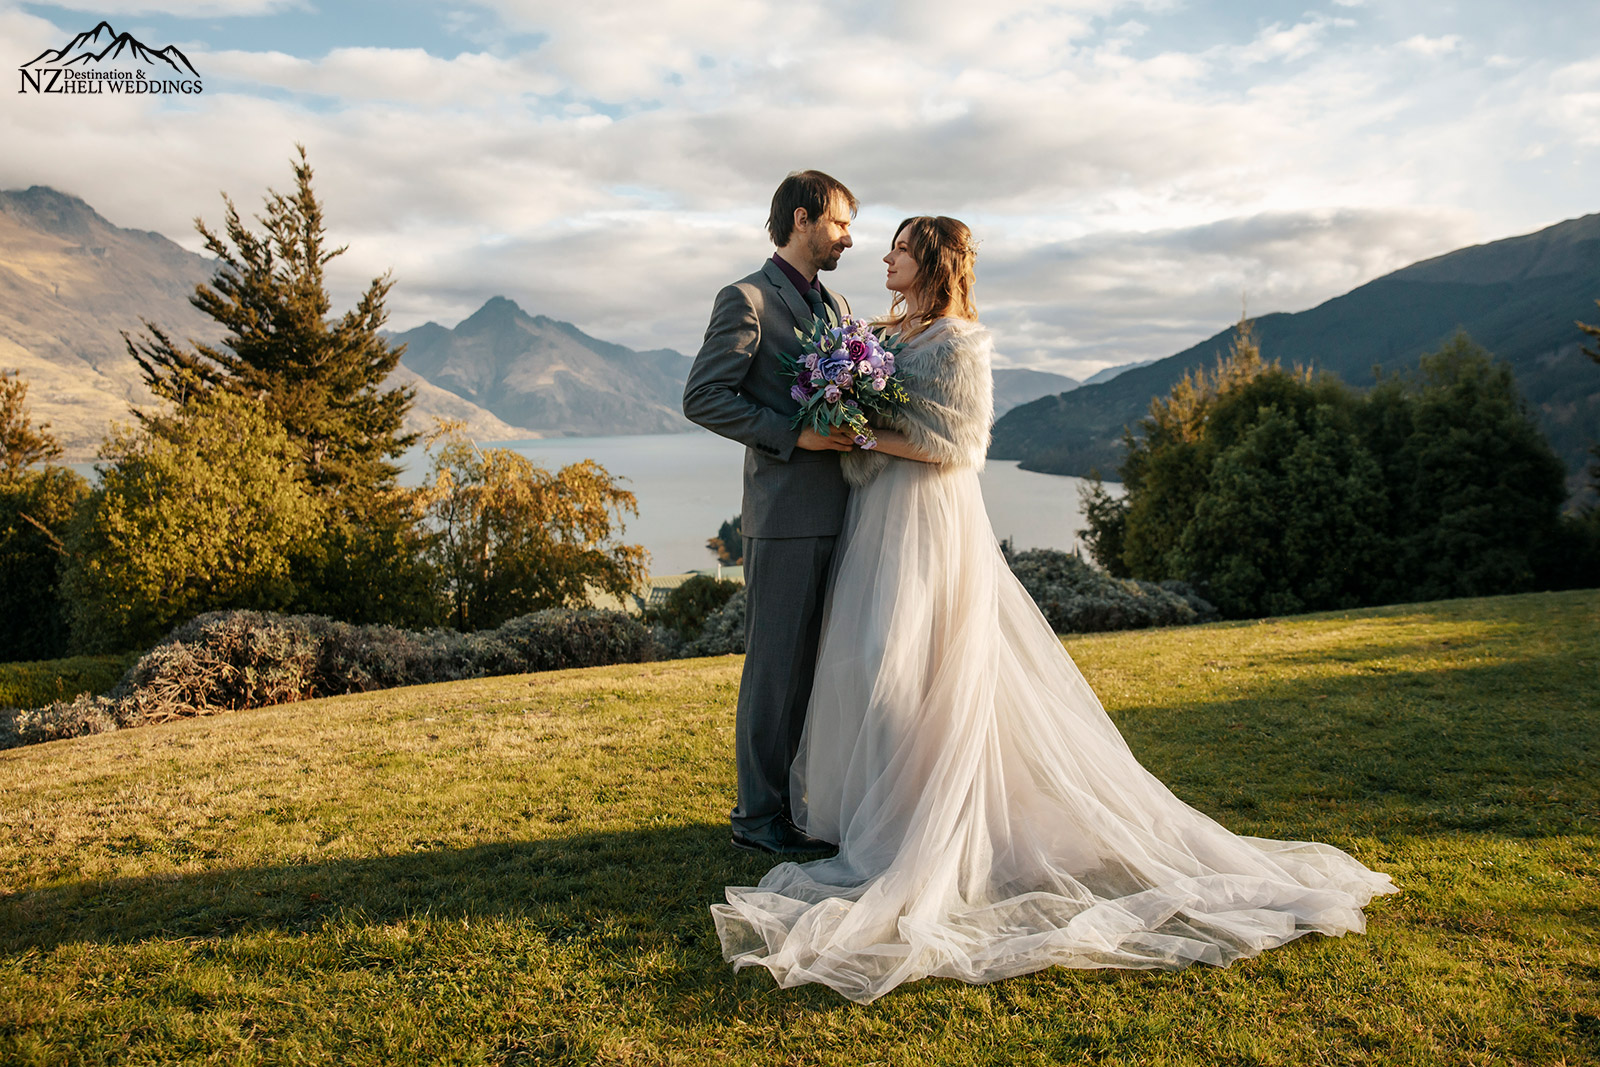 Richardson Mountains Elopement   Photography by  NZ Heli Weddings